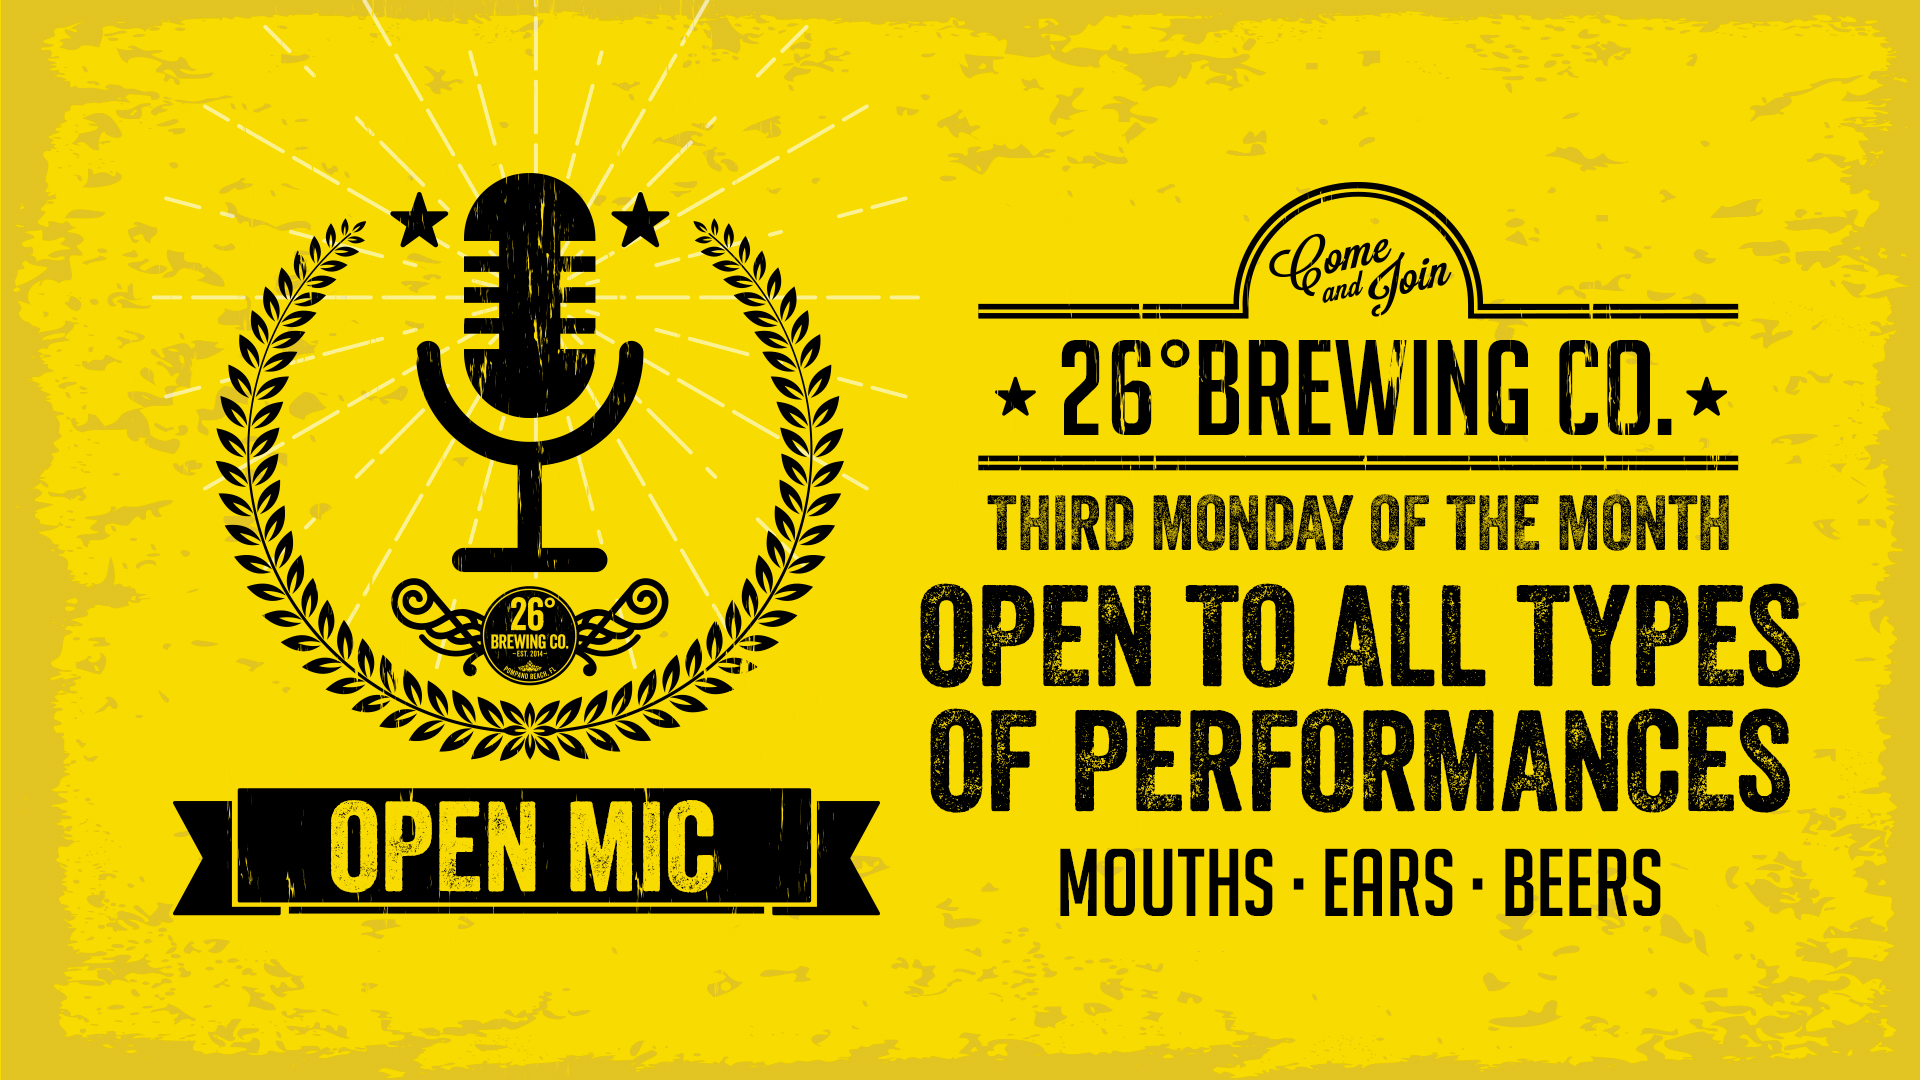 26BREW-17-0049-Open-Mic-Update-Flat-Screen